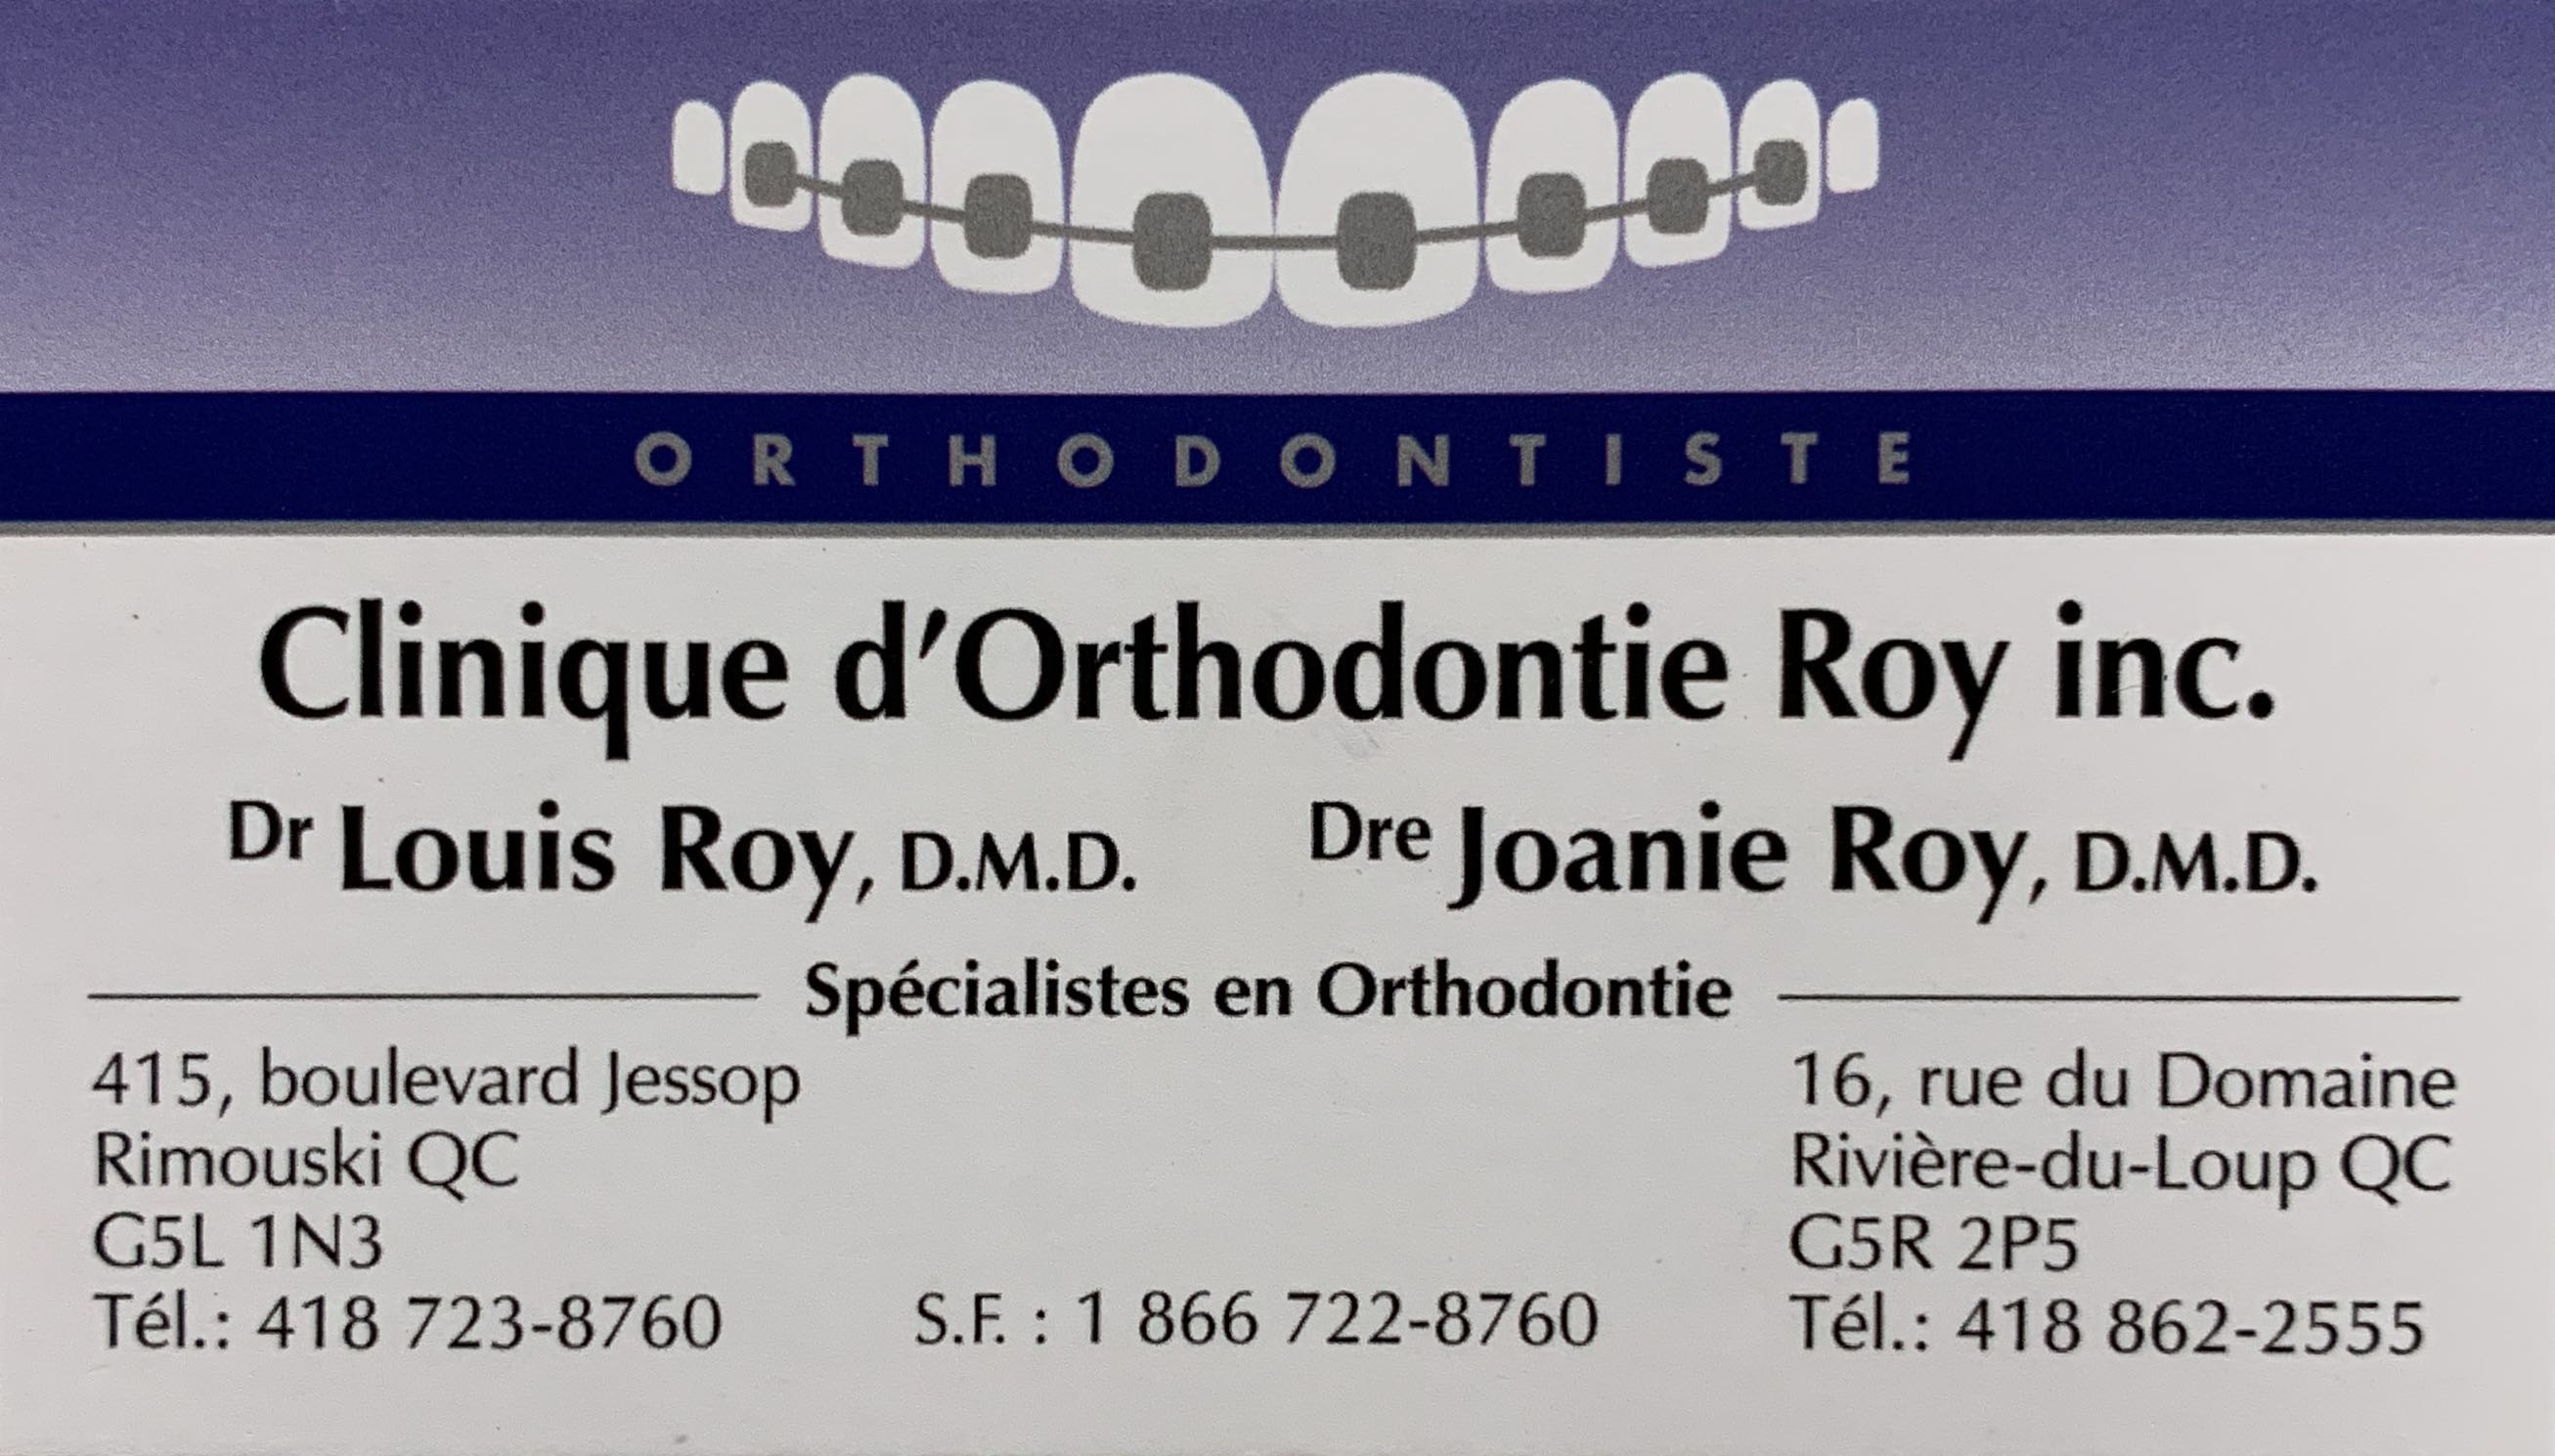 Clinique d'Orthodontie Roy